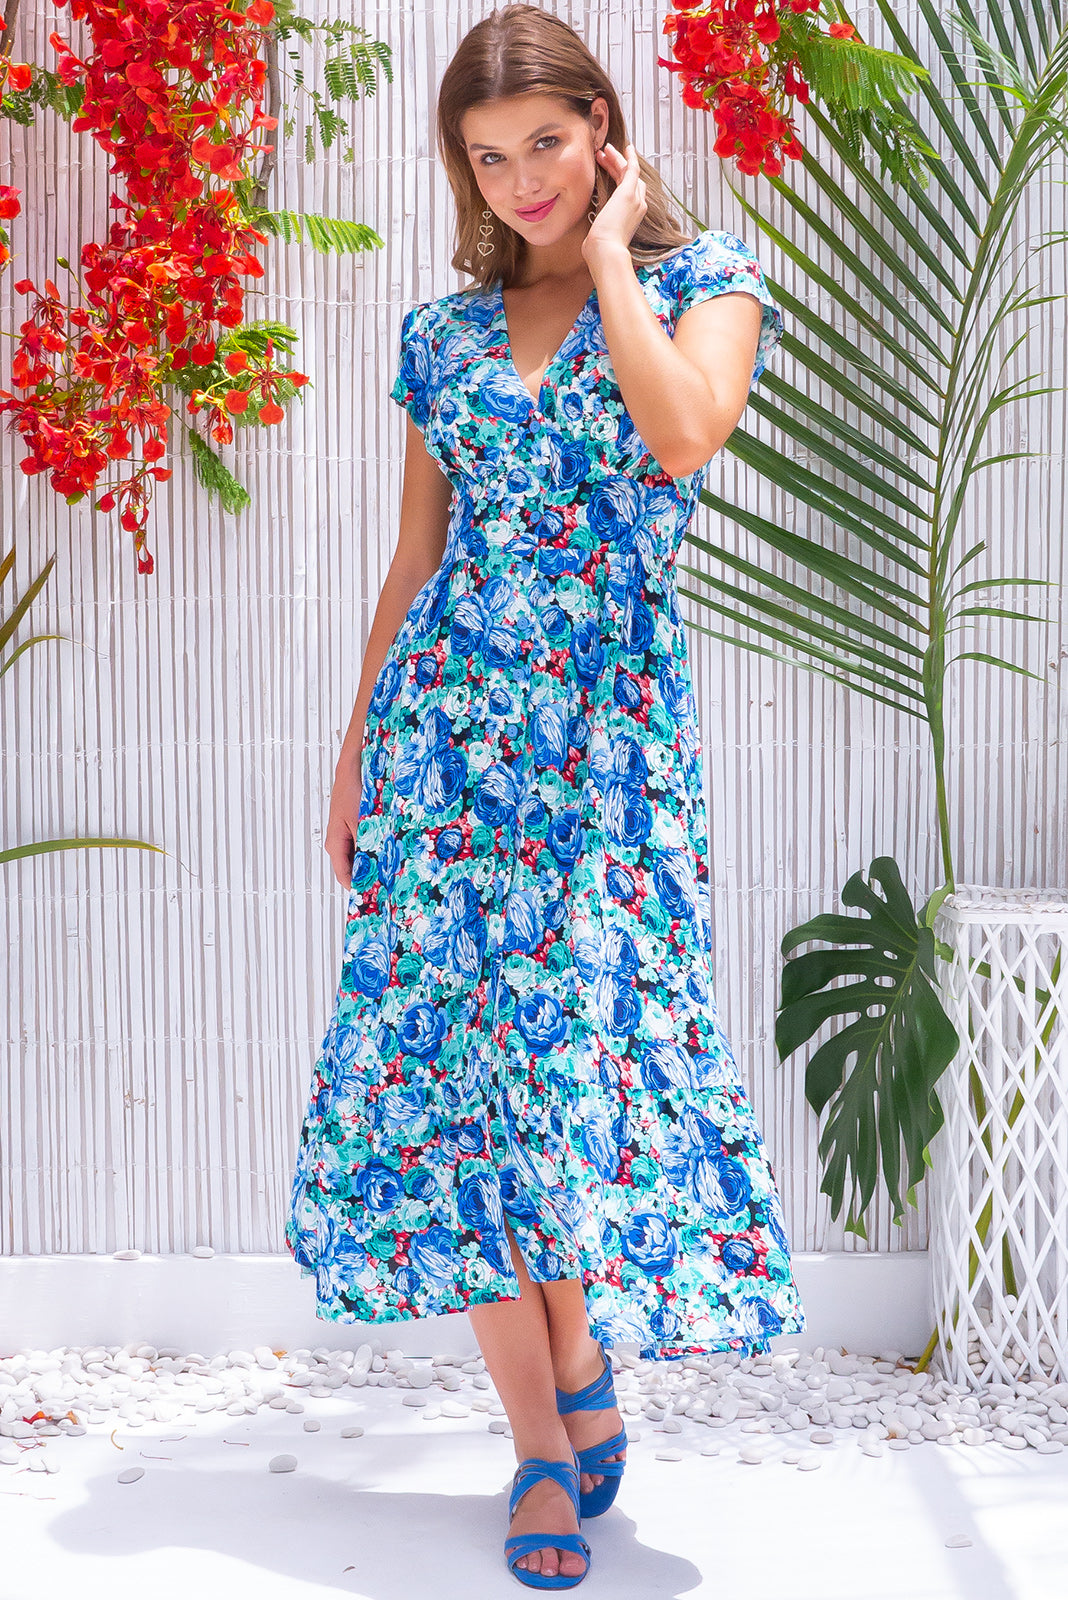 Jude Sunday Best Blue Midi Dress retro vintage inspired green/blue floral print rayon fabric with button front, cap sleeves and side pockets.